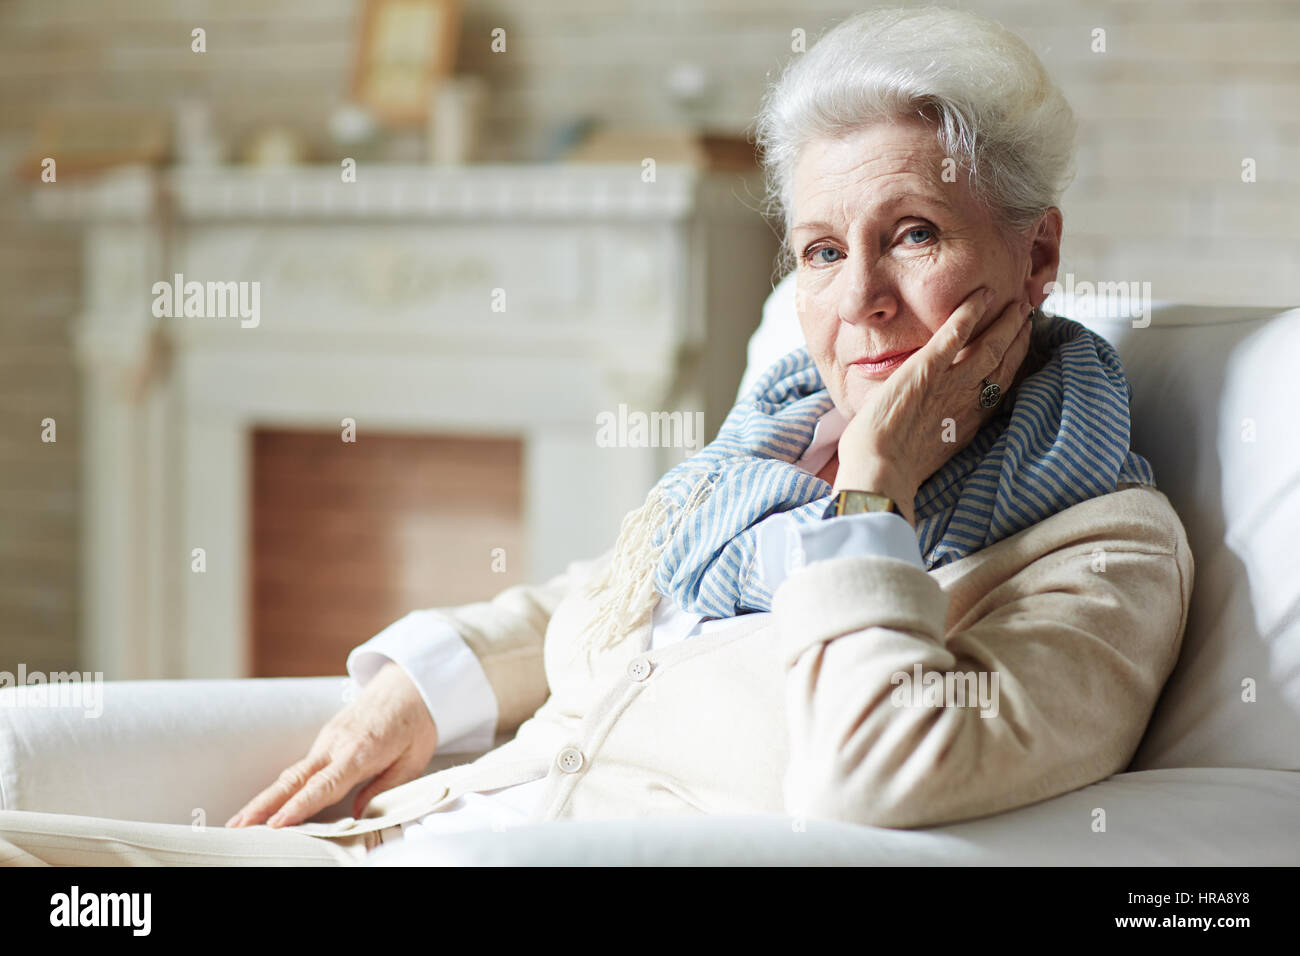 Pretty elderly woman in white shirt and beige cardigan leaning on elbow and looking at camera with slight smile - Stock Image